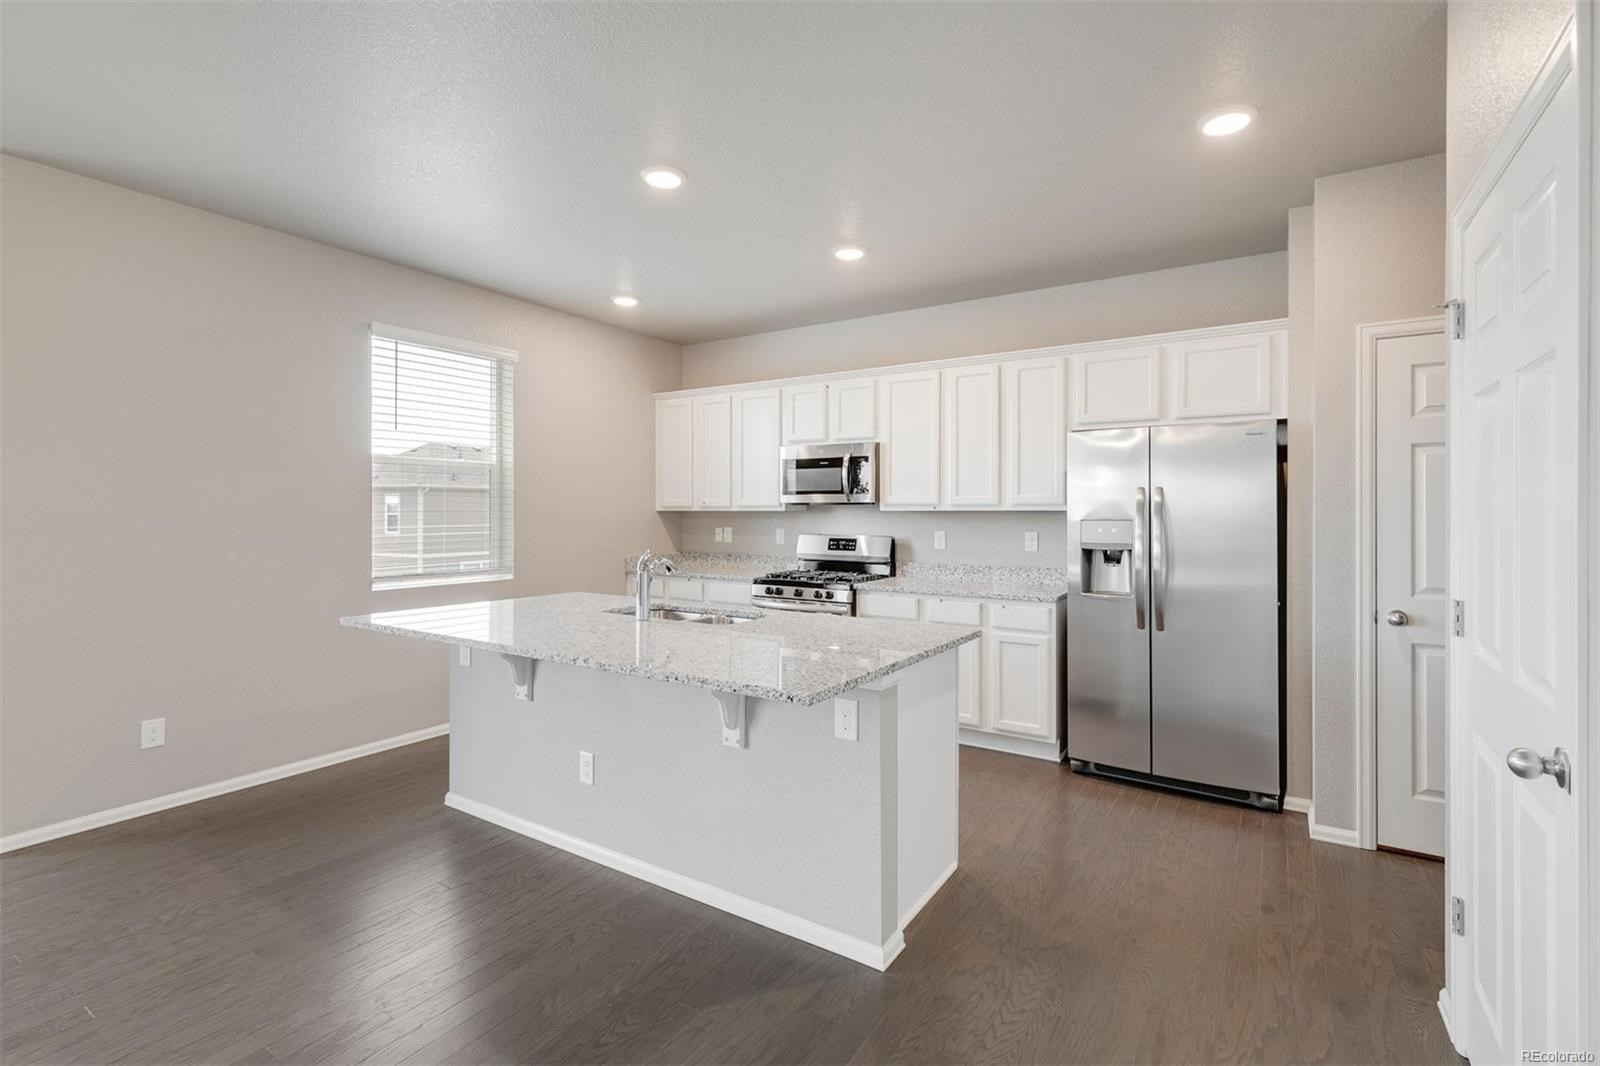 MLS# 3645271 - 10 - 6915 Grainery Court, Timnath, CO 80547